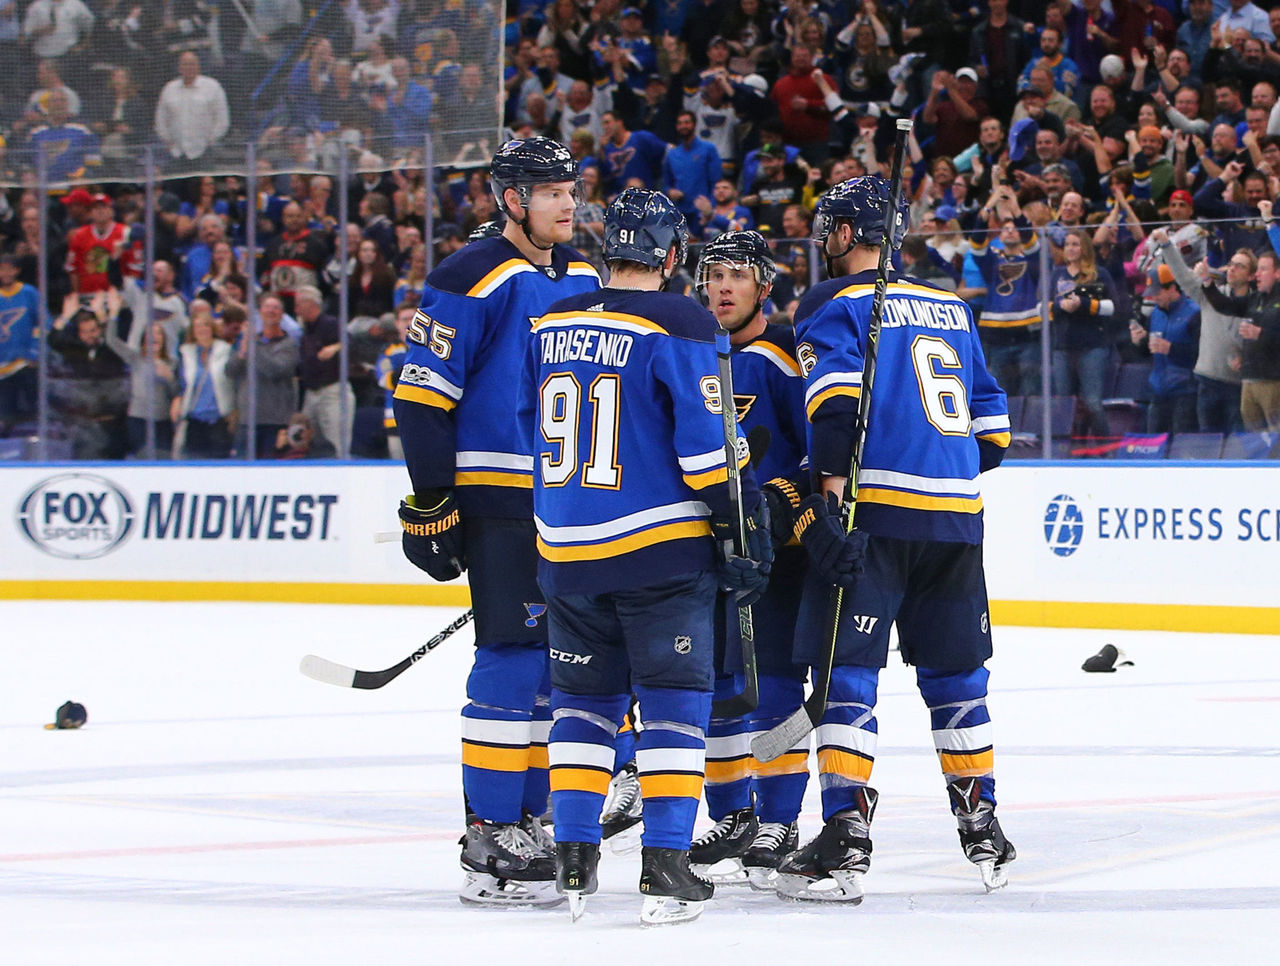 Cropped_2017-10-19t030016z_2138512906_nocid_rtrmadp_3_nhl-chicago-blackhawks-at-st-louis-blues